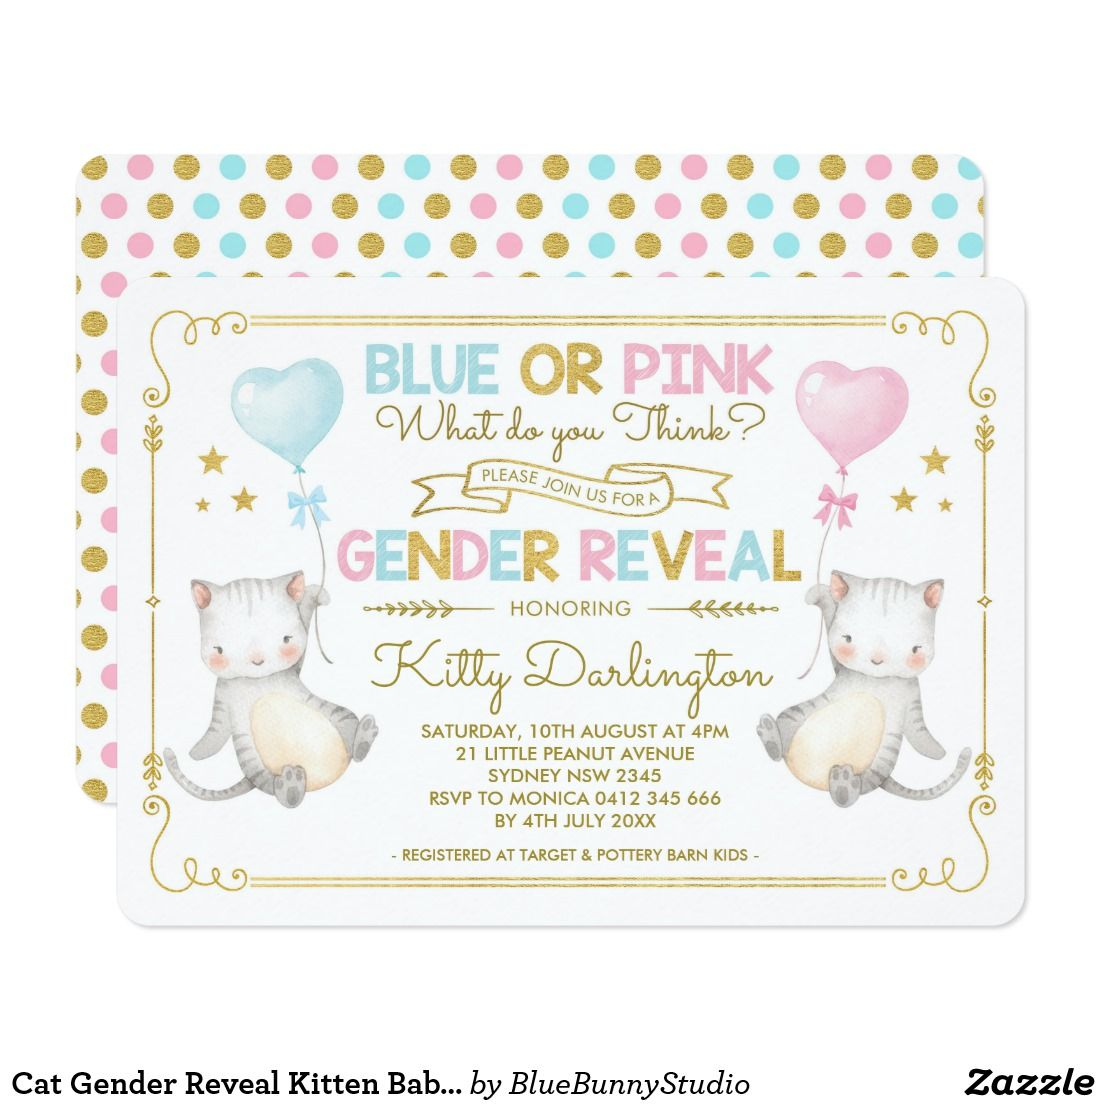 Cat Gender Reveal Kitten Baby Shower Boy Or Girl Invitation Zazzle Com Cat Baby Shower Whimsical Baby Shower Invitation Whimsical Baby Shower